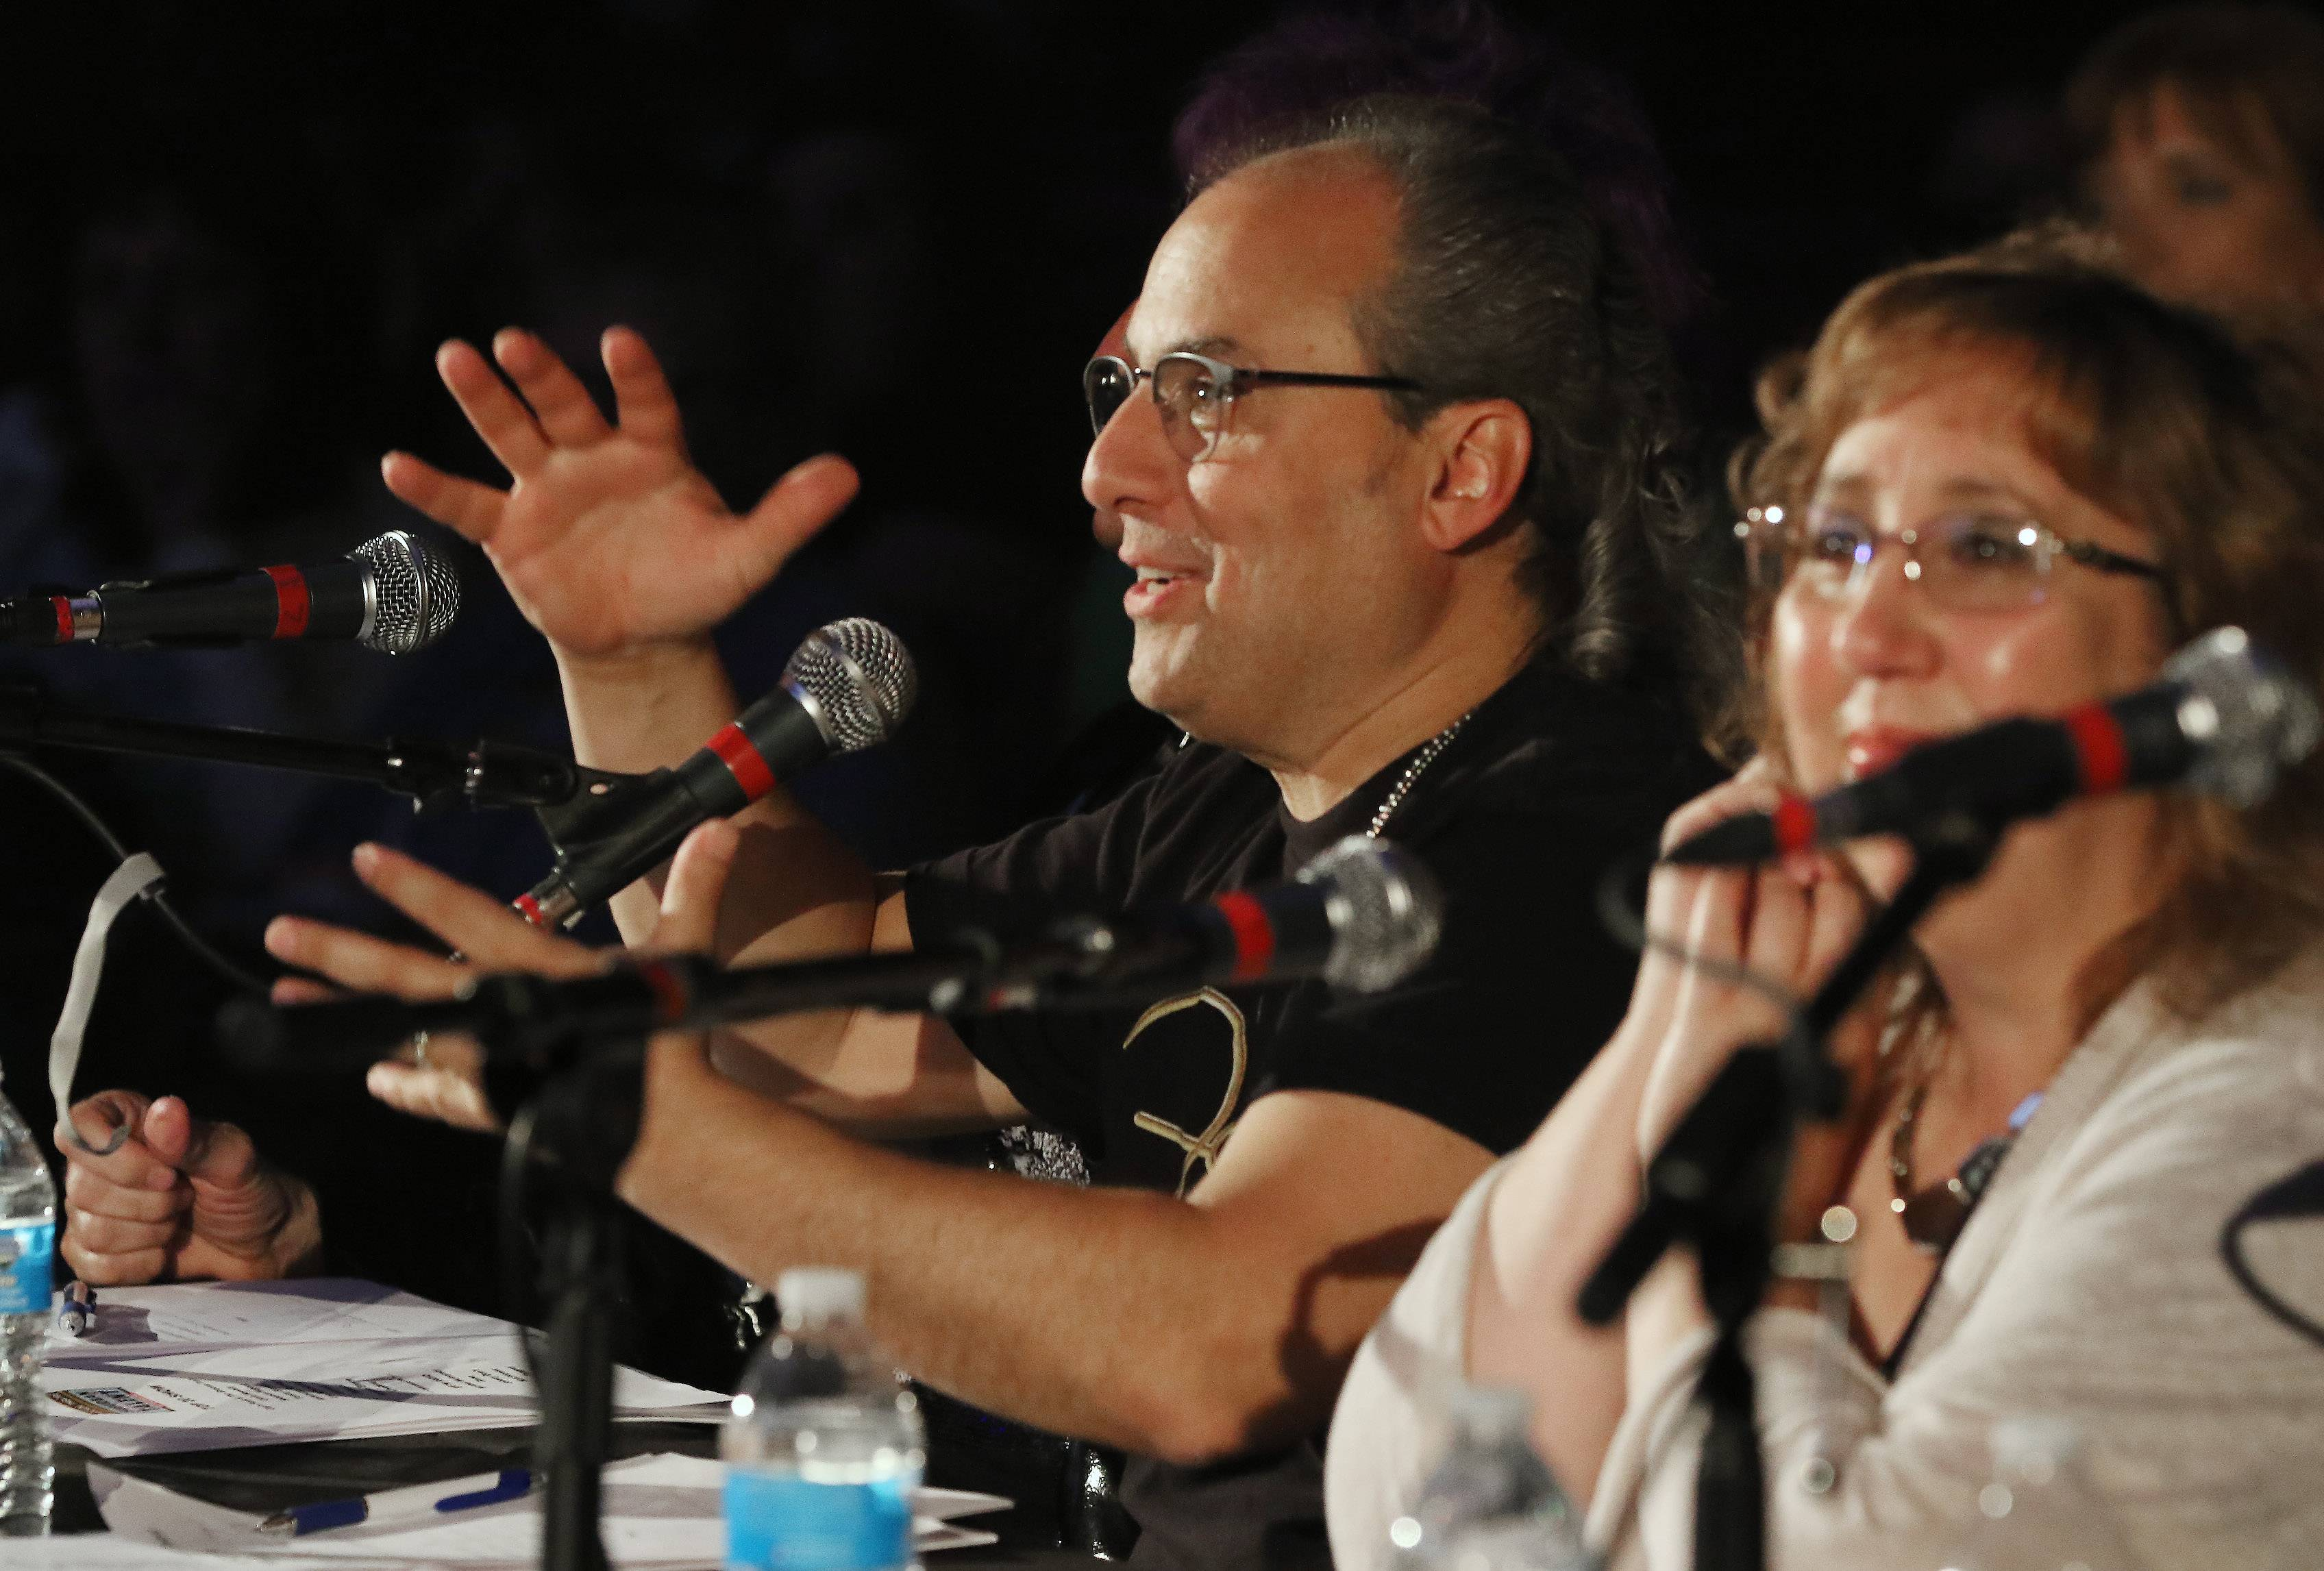 Ron Onesti and Barbara Vitello will return as judges for the Top 15 round of Suburban Chicago's Got Talent at the Arcada Theatre in St. Charles on Sunday, July 29.